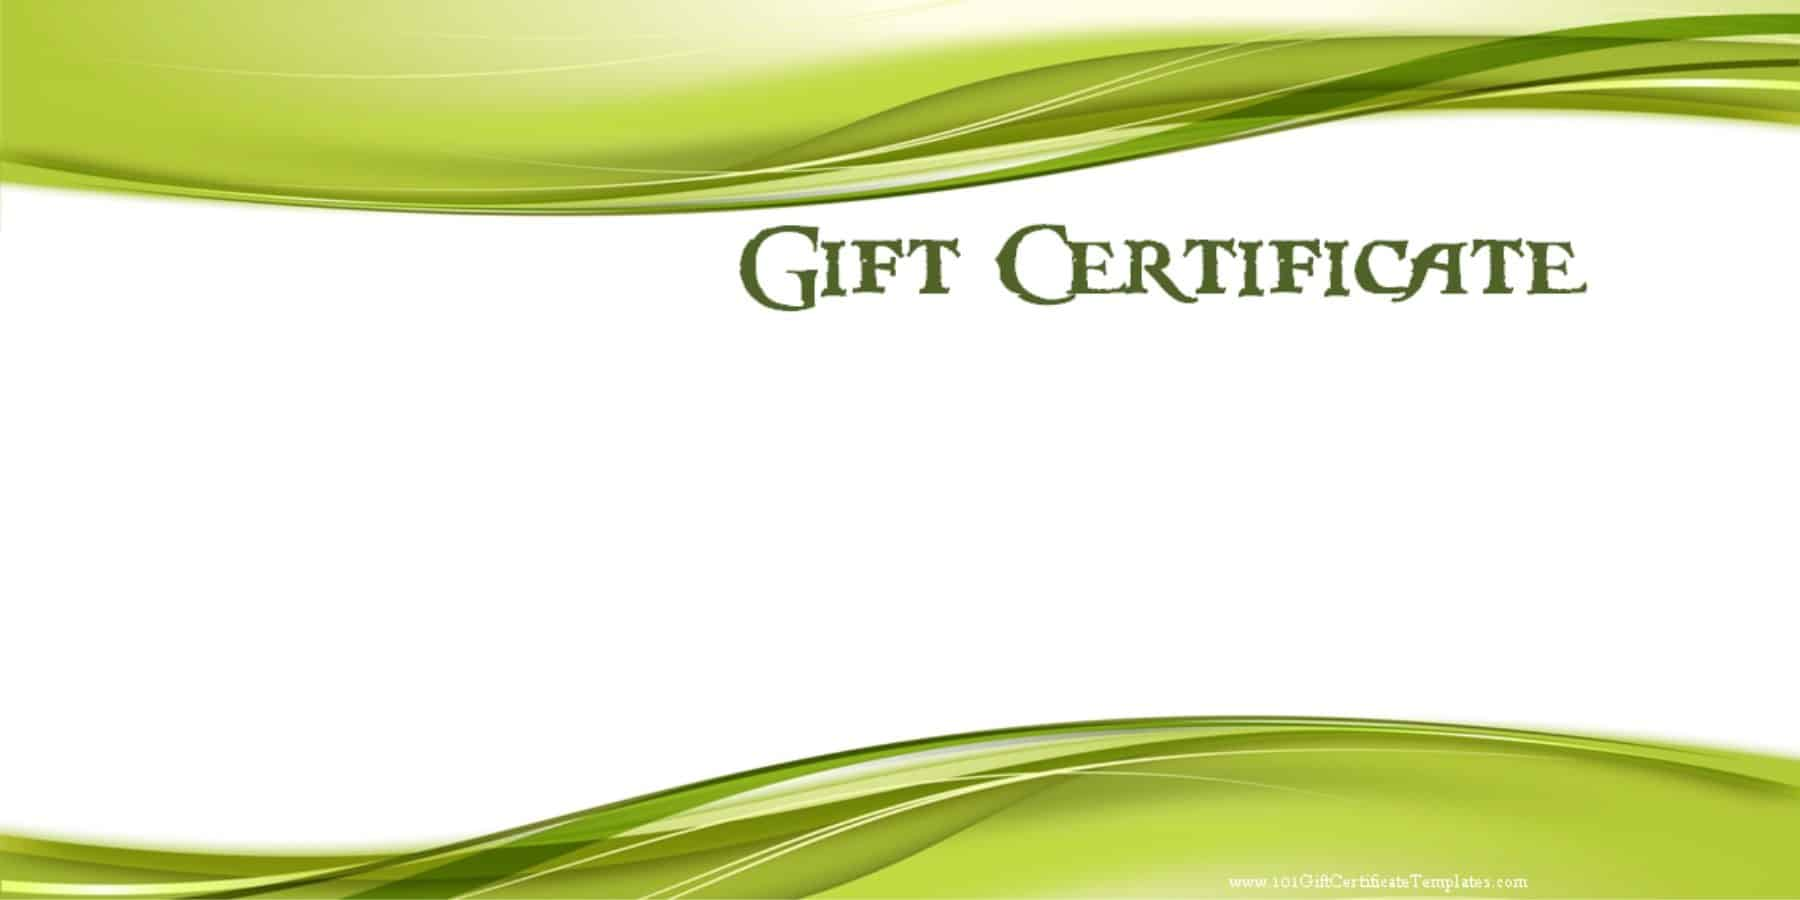 Printable gift certificate templates blank gift certificate which can be customized yadclub